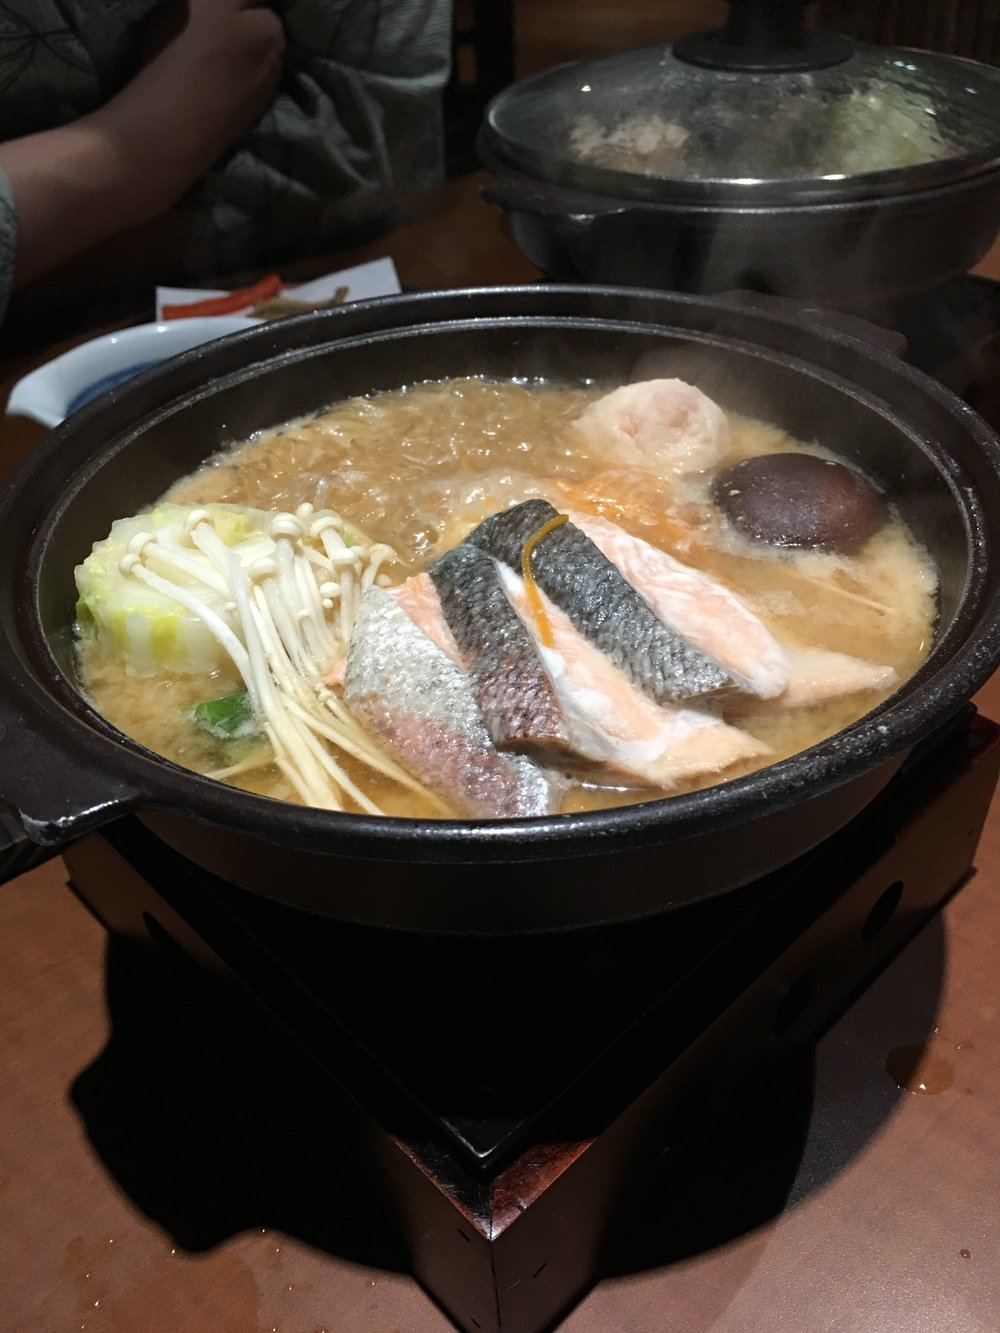 Habitually produced Japanese hotpot warmed my body and soul along with an organic savory delight.